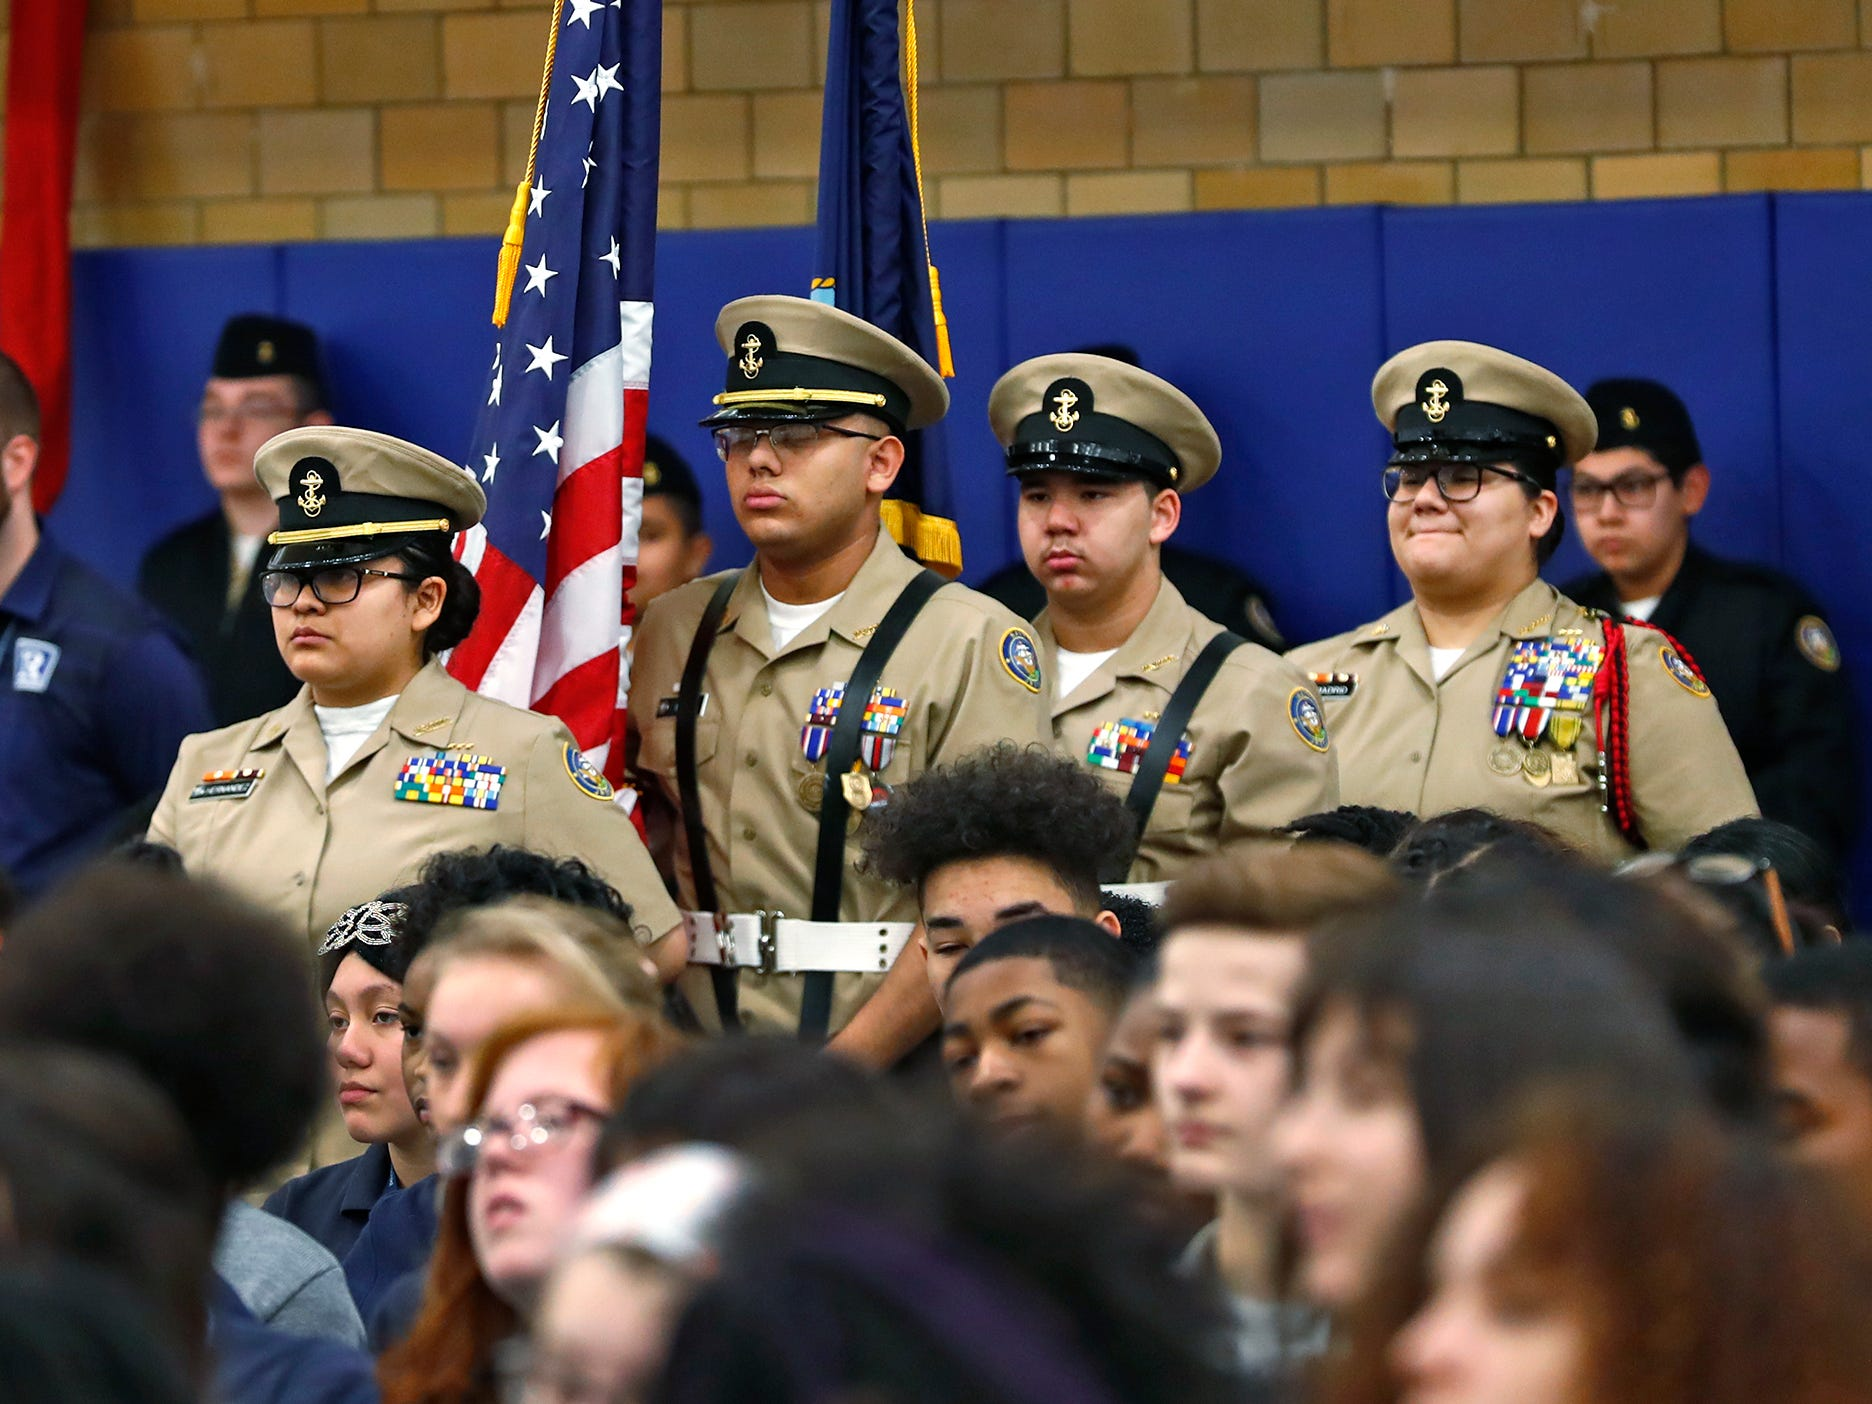 Members of the Pike High School's Junior Reserve Officer Training Corps Color Guard gets ready to Post the Colors during the Pearl Harbor Day Remembrance at Riverside High School, Friday, Dec. 7, 2018.  The former Heslar Naval Armory used to host the event to remember those who died and to honor those who survived in the Dec. 7, 1941 Japanese attack on Pearl Harbor which plunged the United States into World War II.  The Tillman H. Harpole American Legion Post 249 presented the 20th annual service,